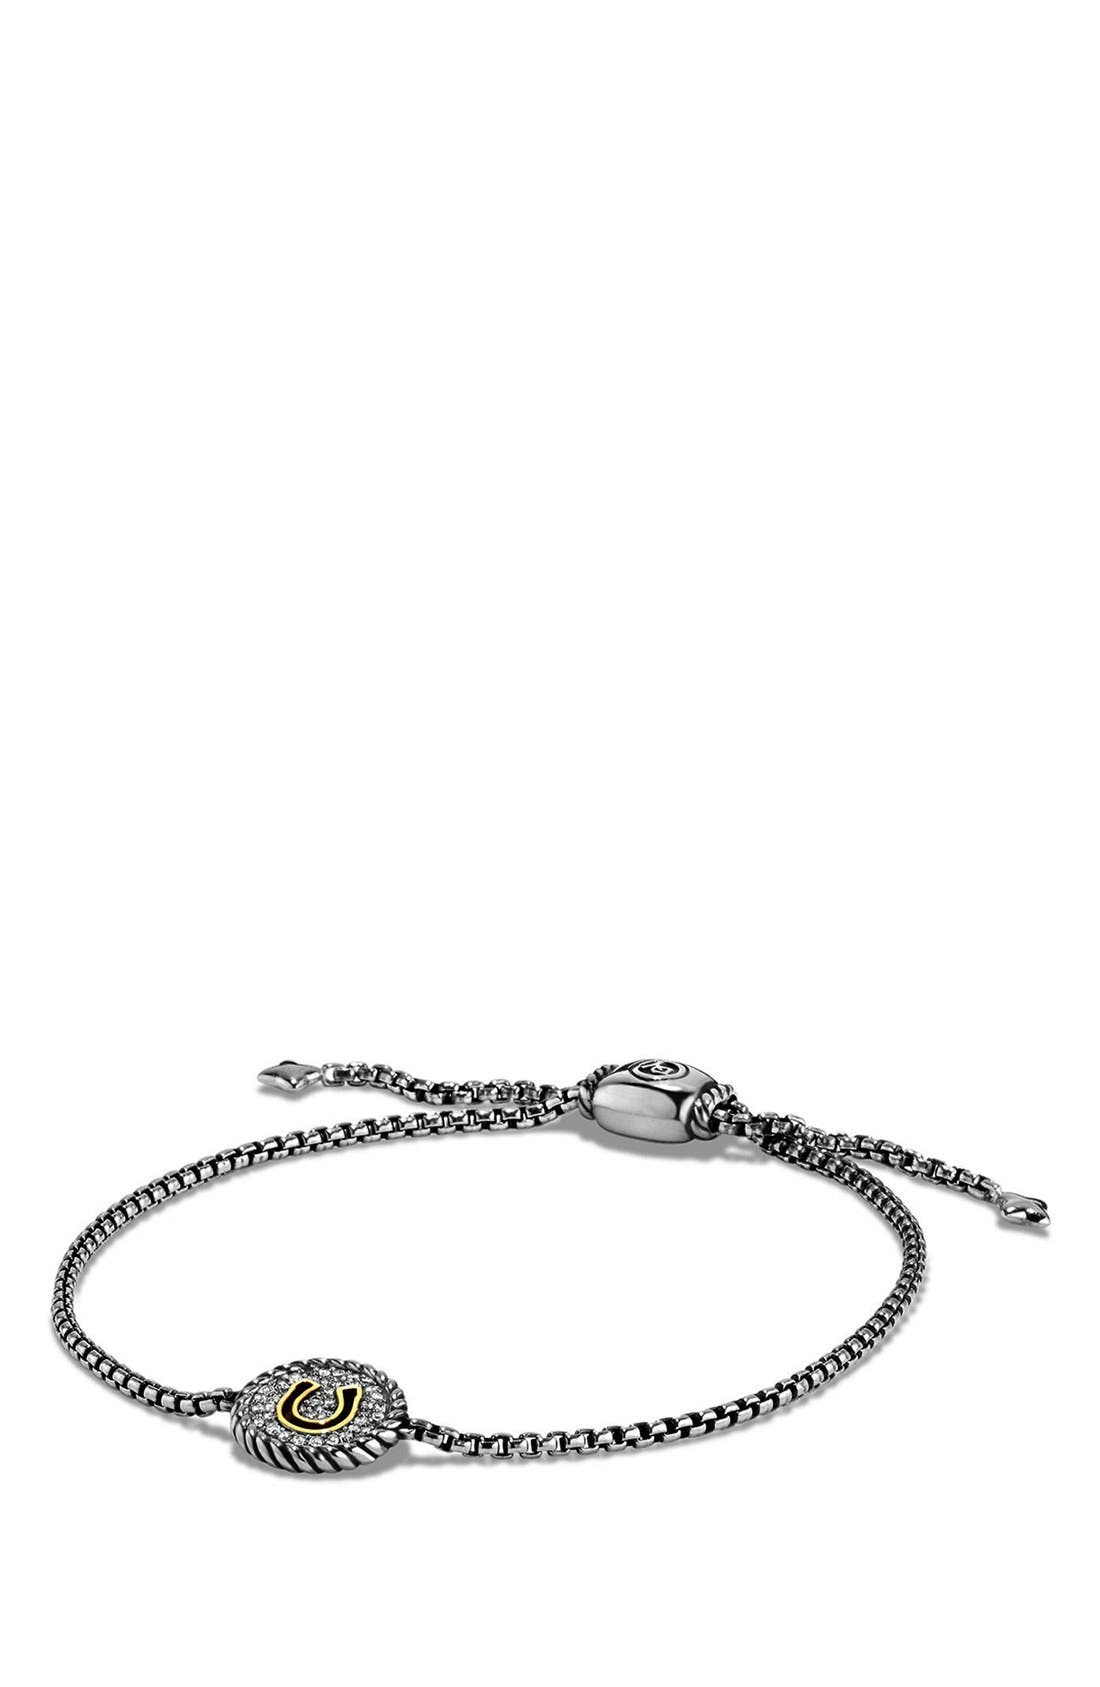 Alternate Image 1 Selected - David Yurman 'Cable Collectibles' Horseshoe Station Bracelet with Diamonds